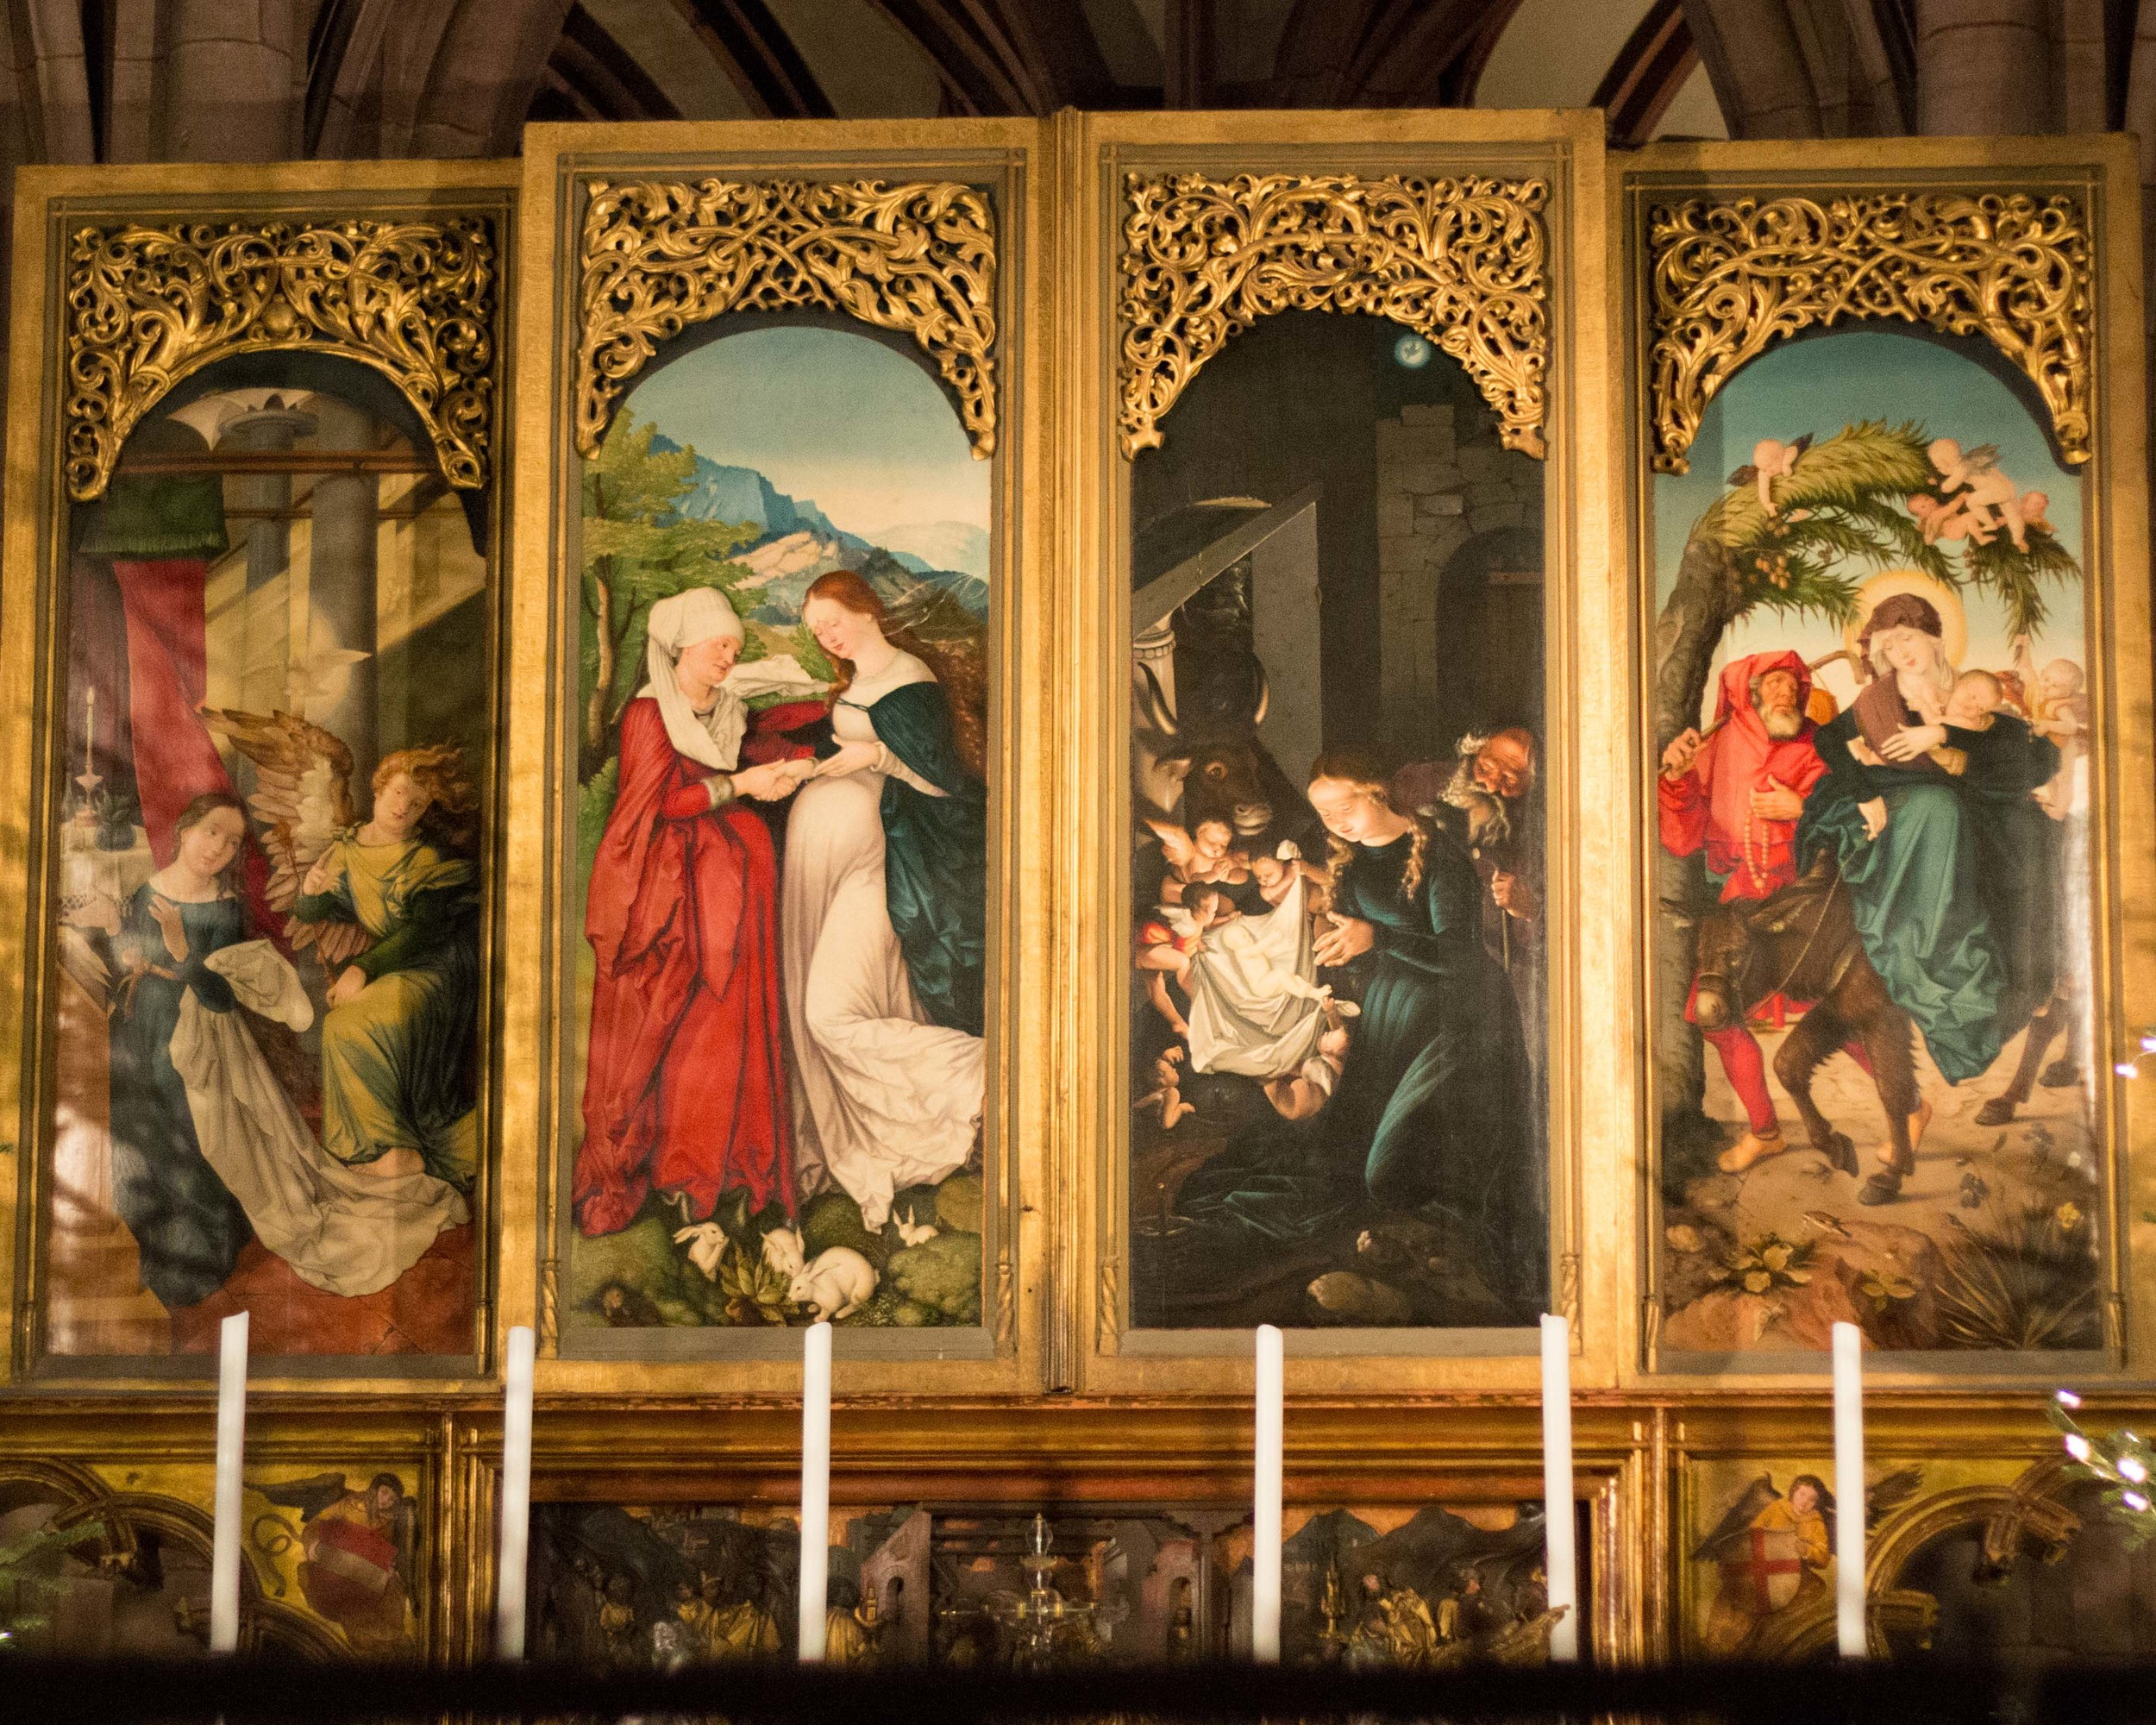 Alter piece at the Freiberg cathedral. During the Christmas season, it's closed and tells the story of Jesus's birth. The rest of the year it is open and contains many more paintings